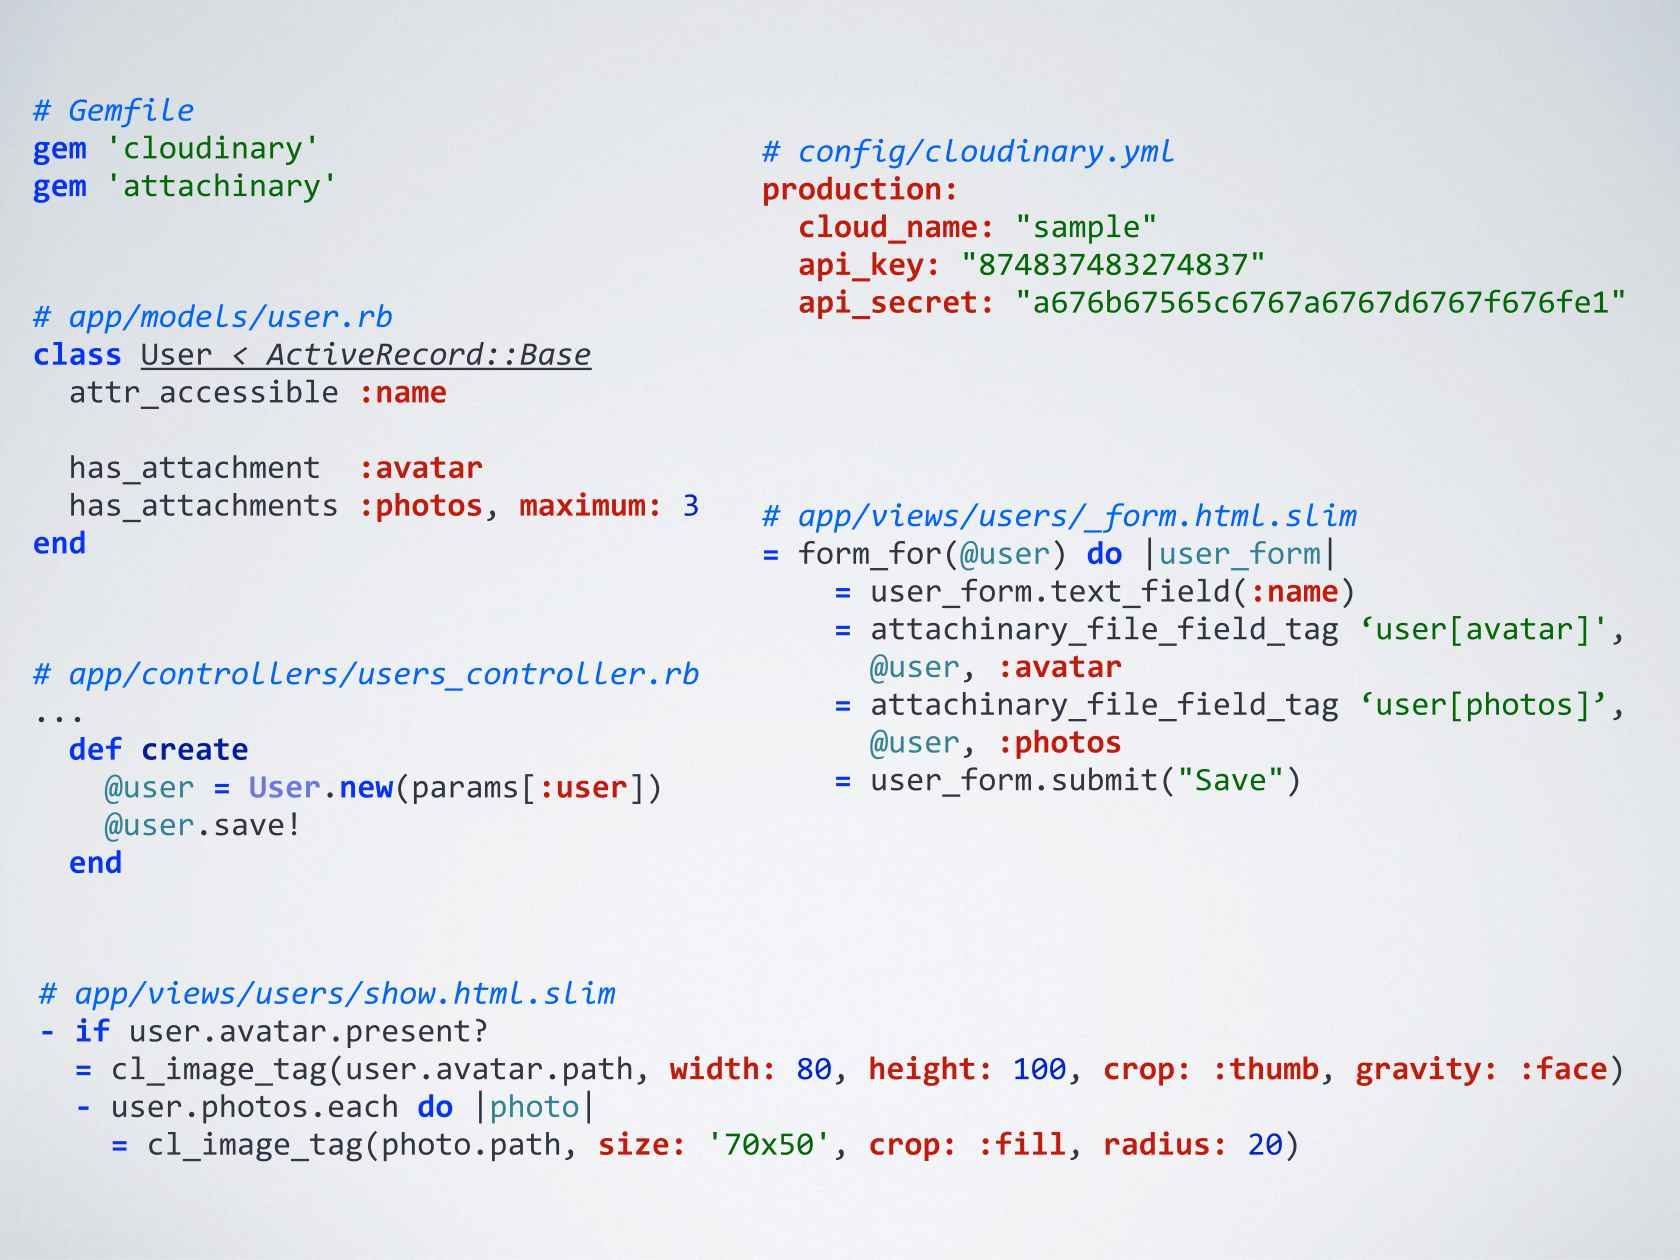 Dicas de performance para aplicaes ruby on rails sponsored content fandeluxe Image collections